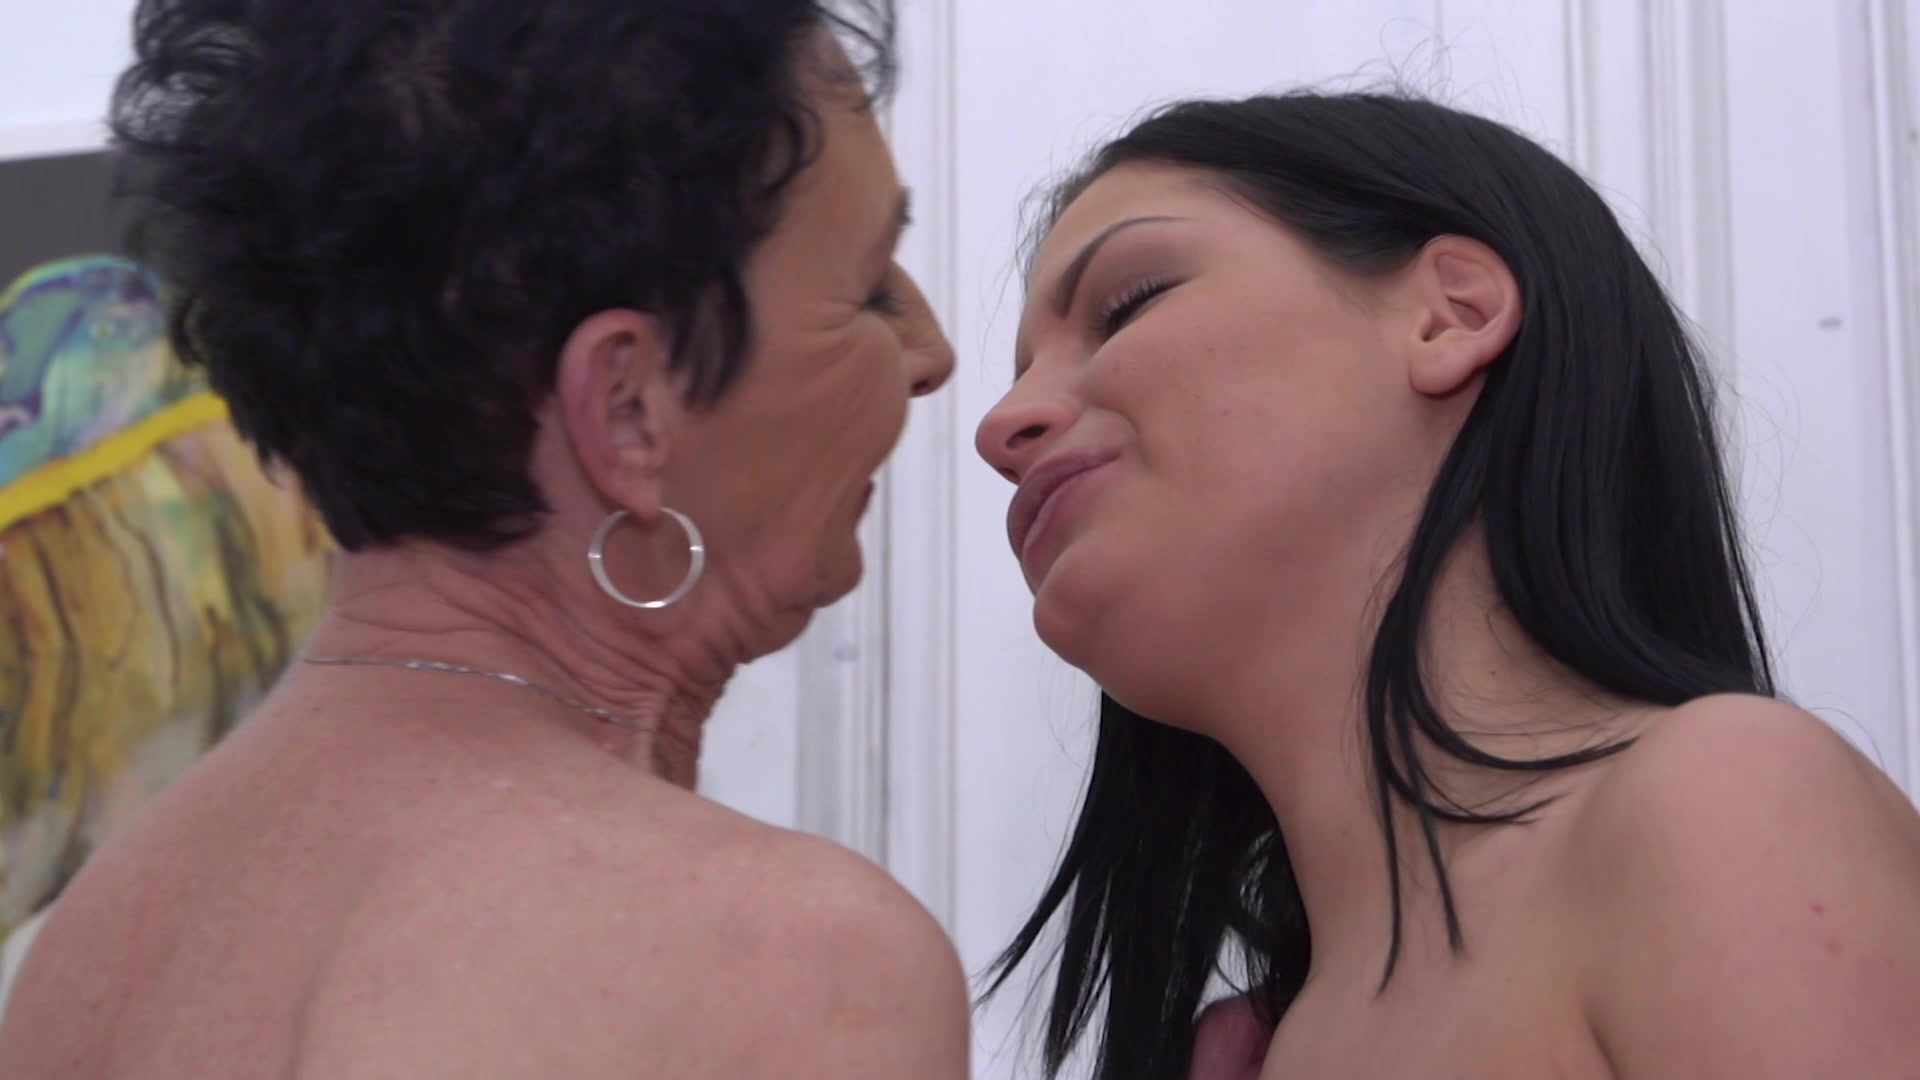 Amateur granny cuckold hubby cleans